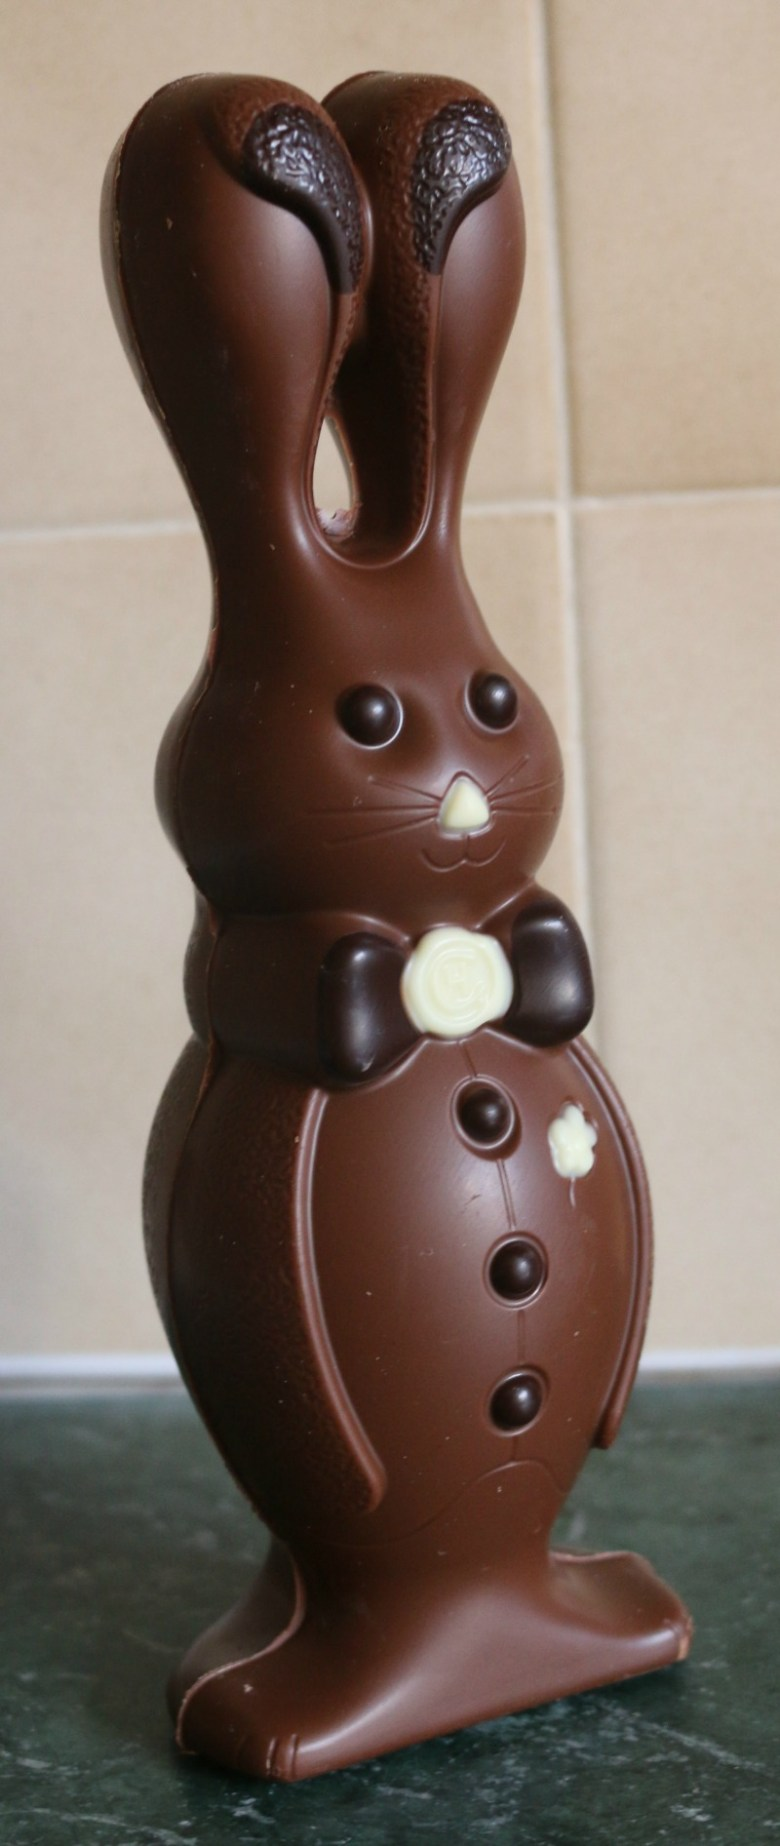 Easter treats from Hotel Chocolat